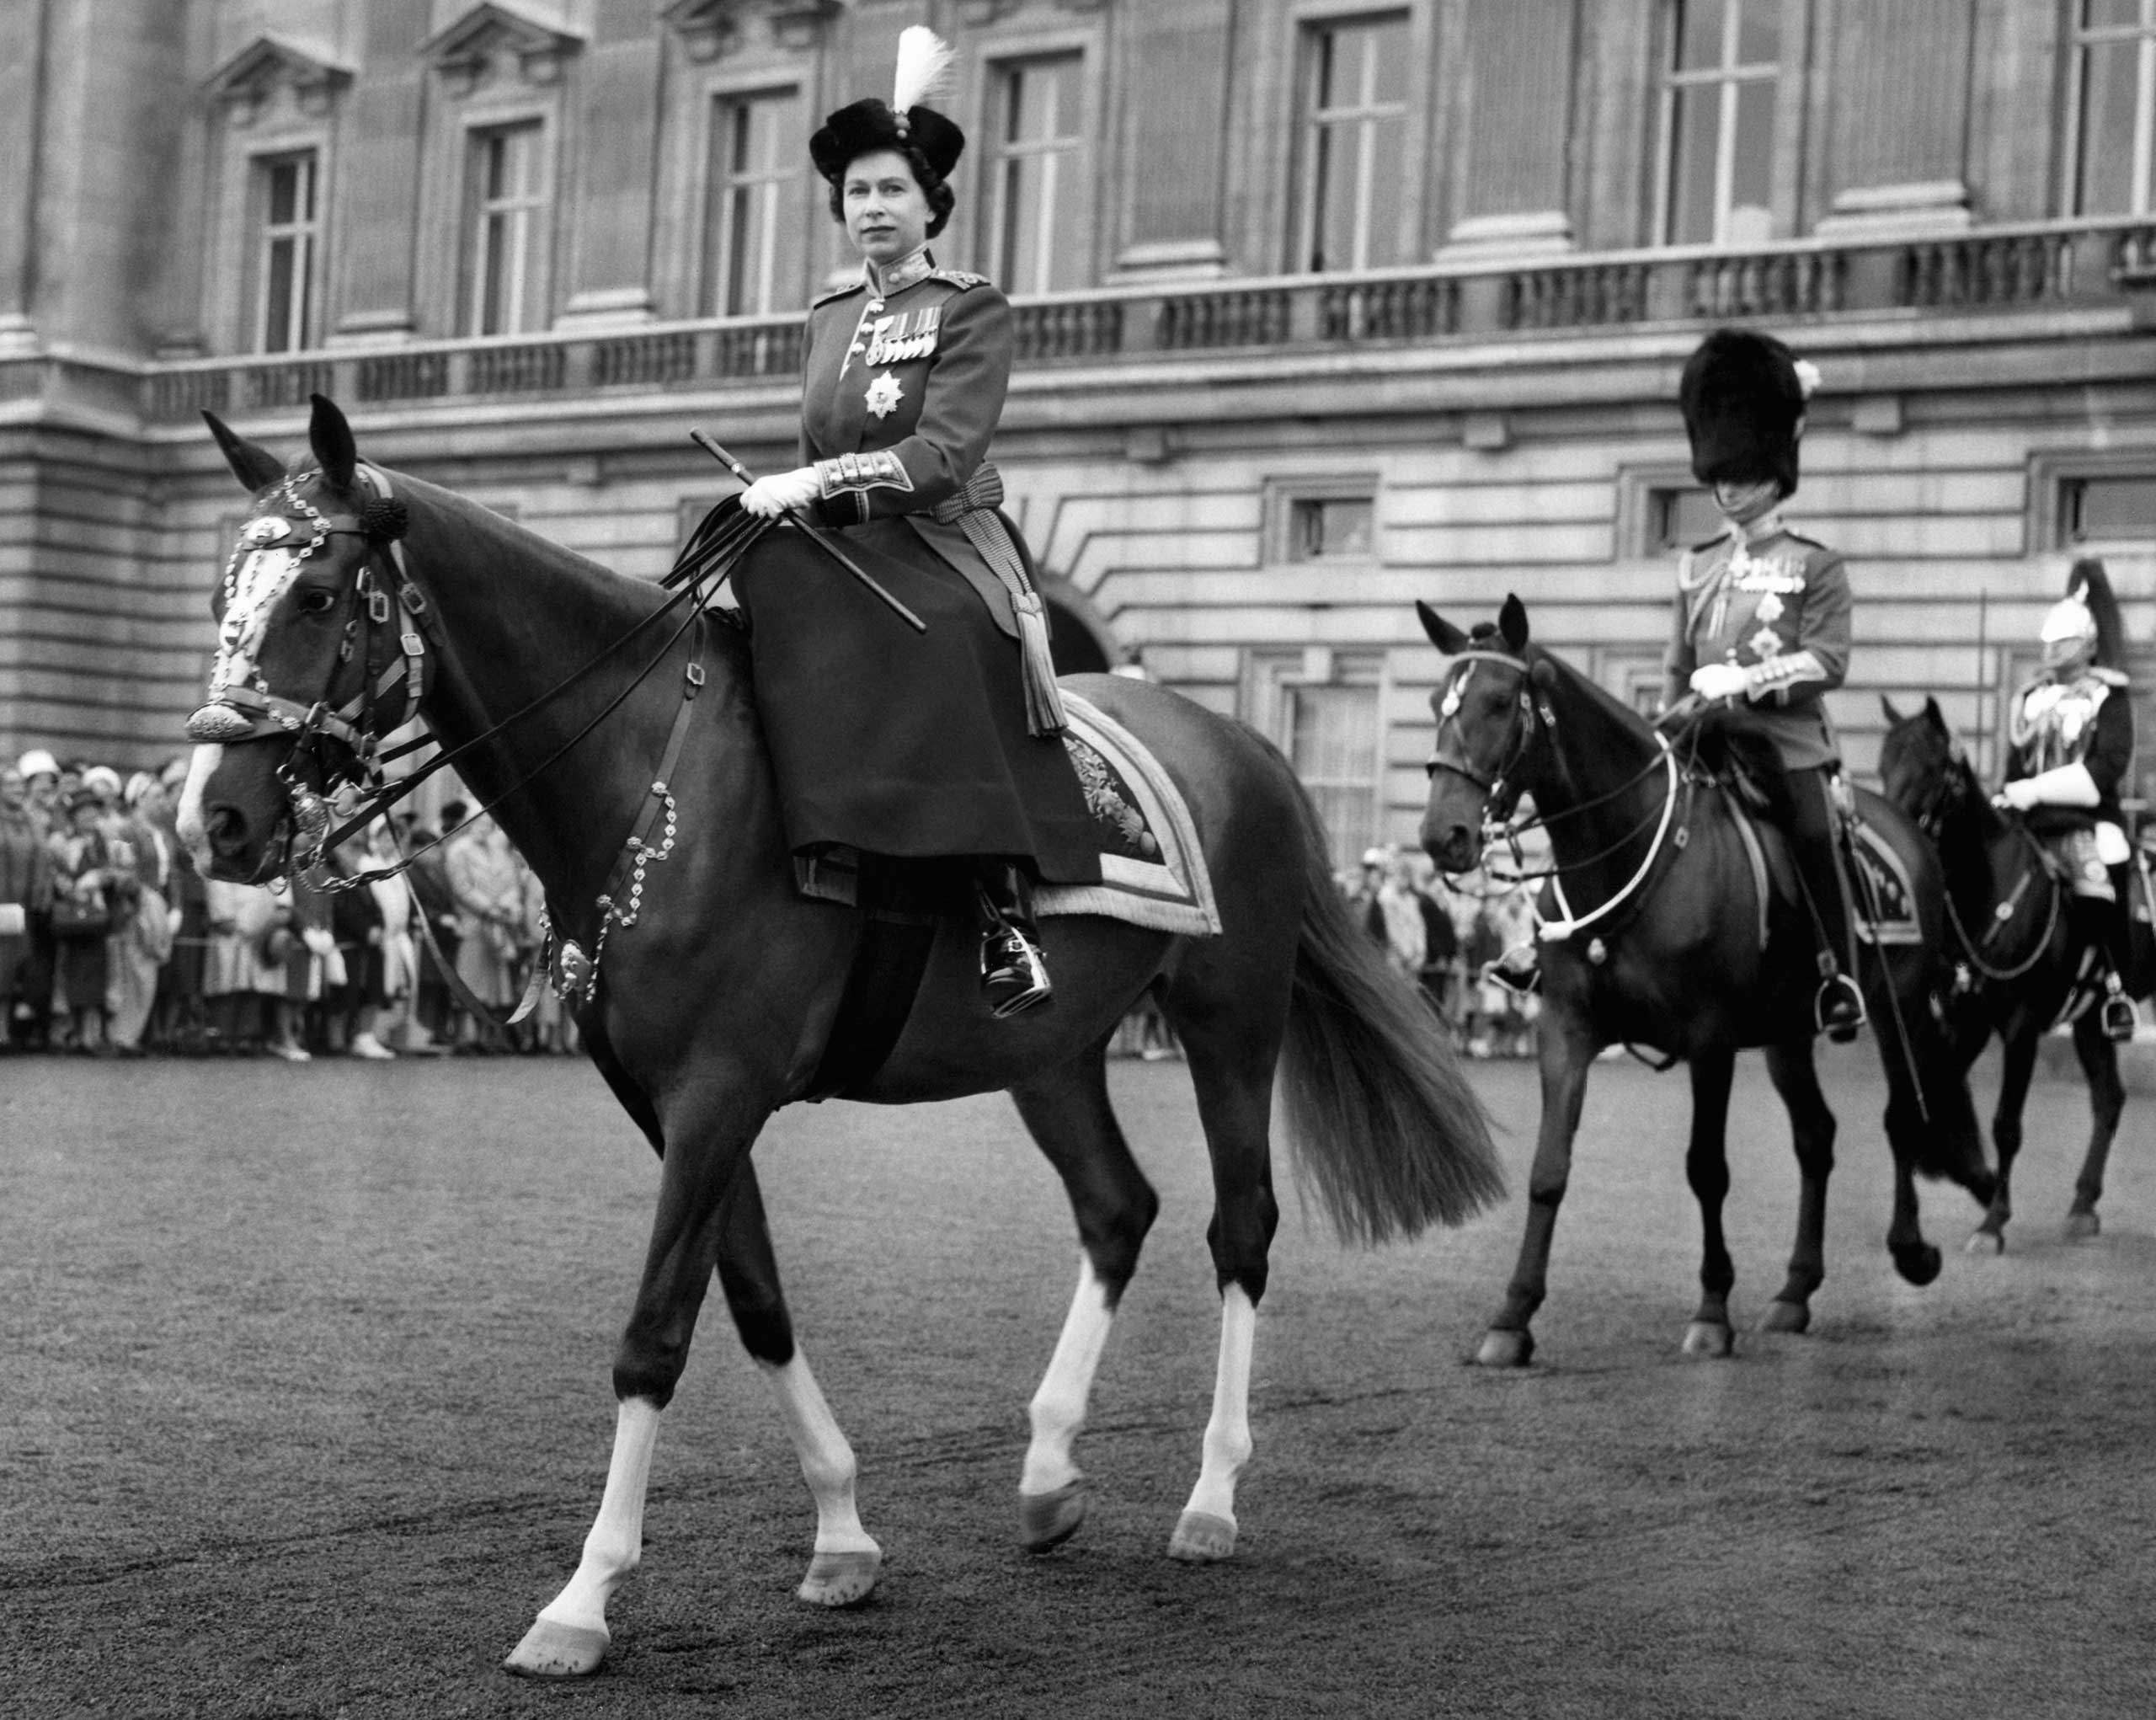 Queen Elizabeth II, rides out from Buckingham Palace in London to take the salute at the ceremony of Trooping the Colour to celebrate her official birthday in June 1960.